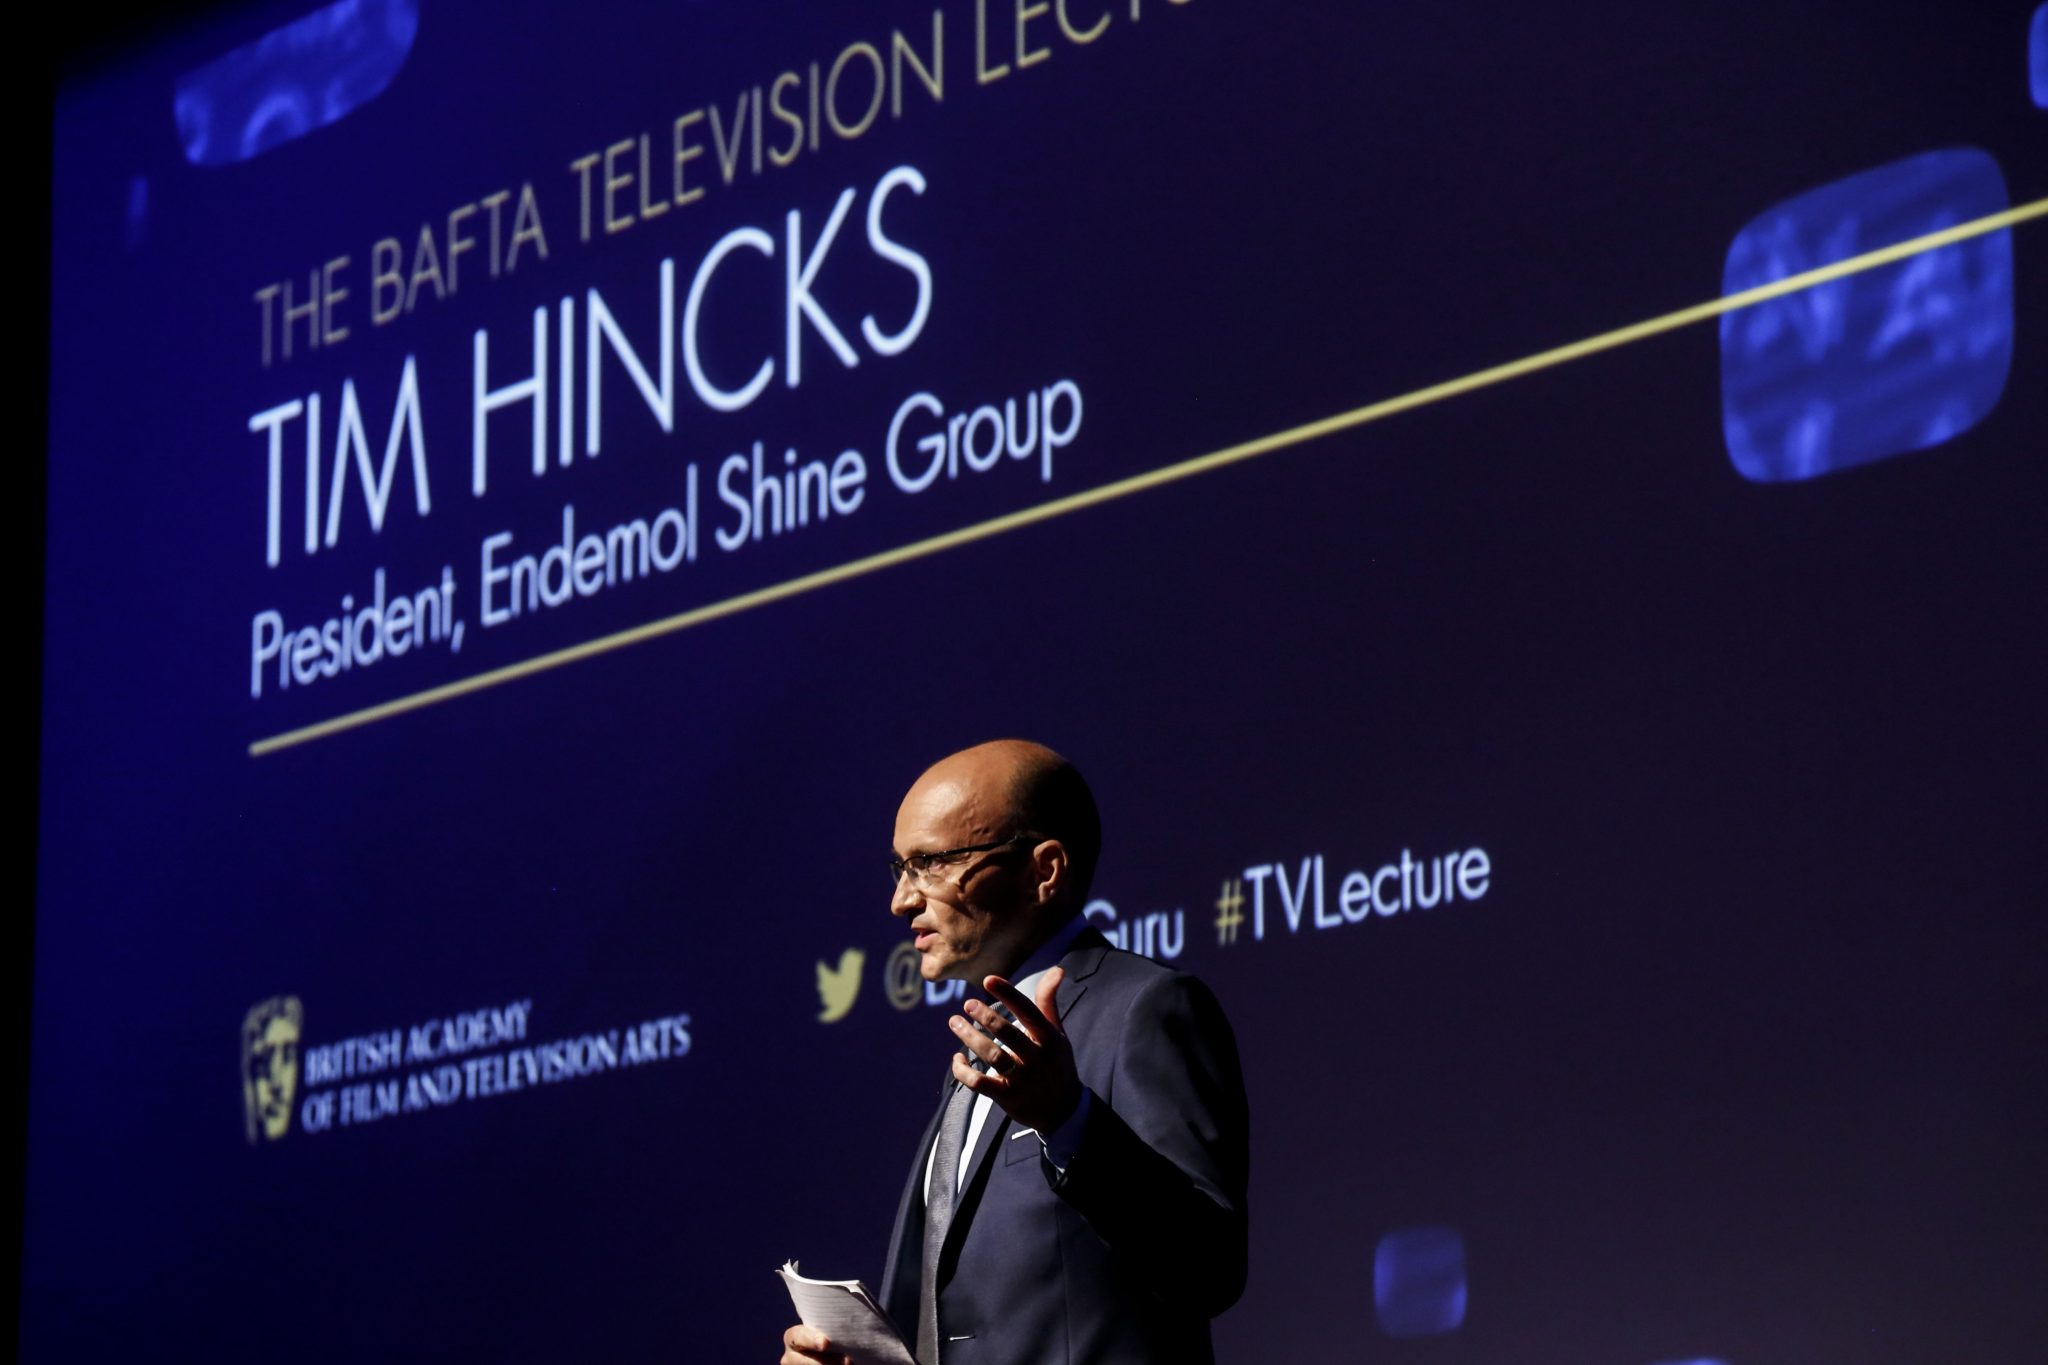 Event: Annual Television Lecture given by Tim Hincks Date: Tuesday 30 June, 2015 Venue: BAFTA, 195 Piccadilly Host: Steve Hewlett